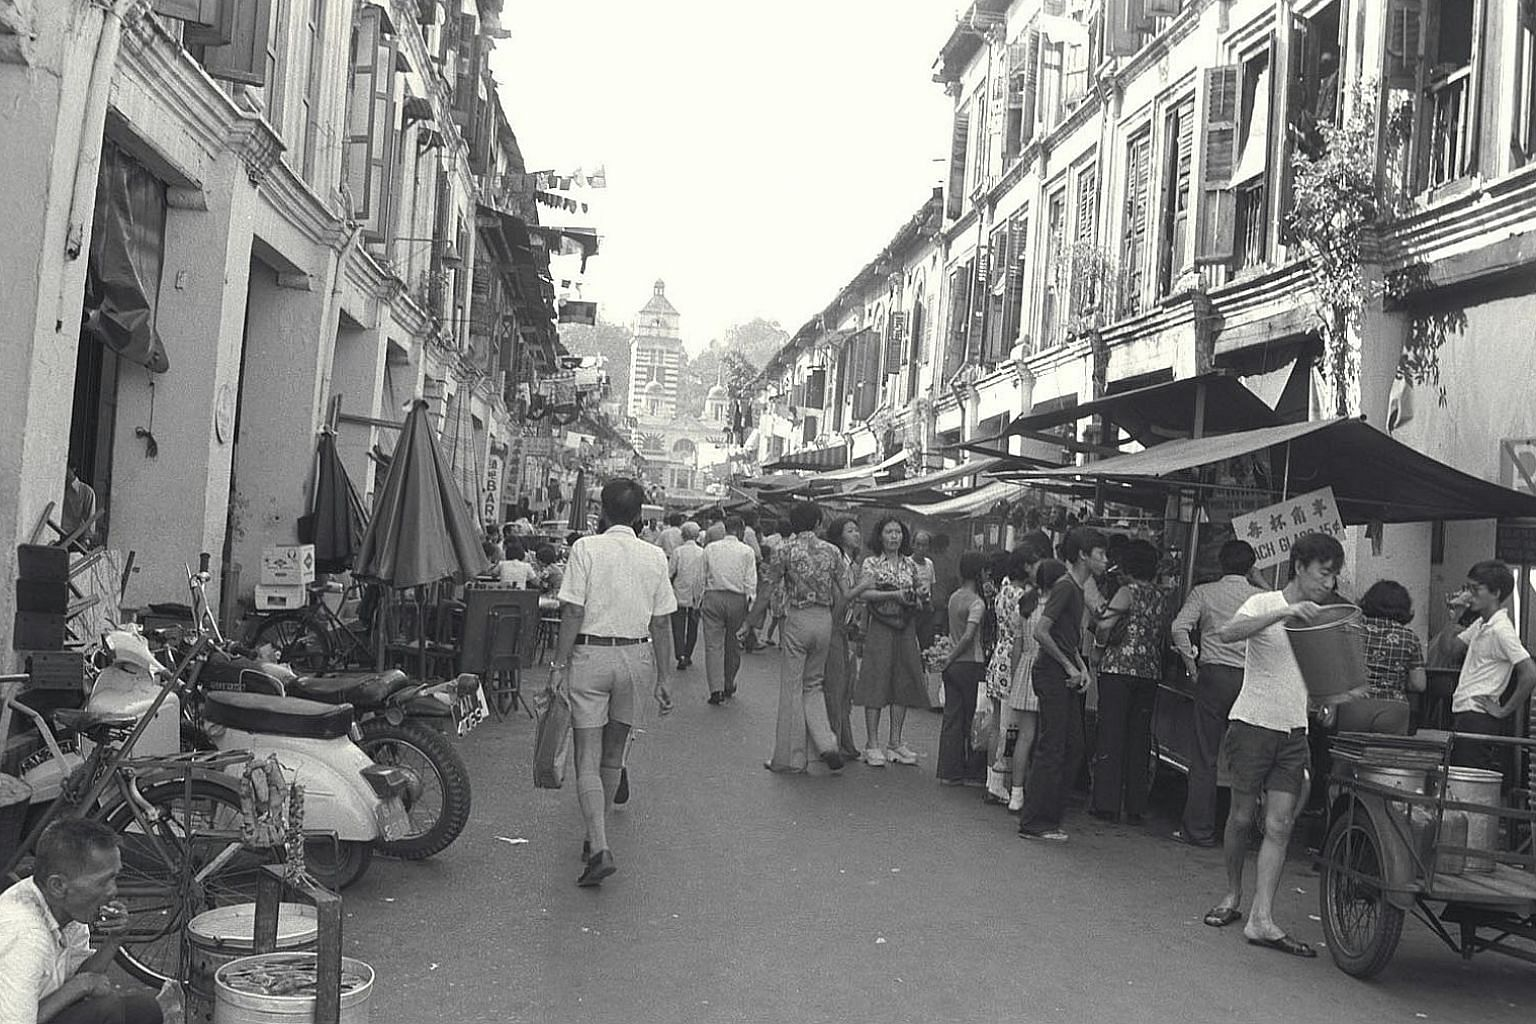 Hawkers in Hock Lam Street in 1975. At that time, hundreds of street hawkers in the city were asked by the Environment Ministery to fill up empty stalls in existing hawker centres. These hawkers, many of whom have been operating for years in side str